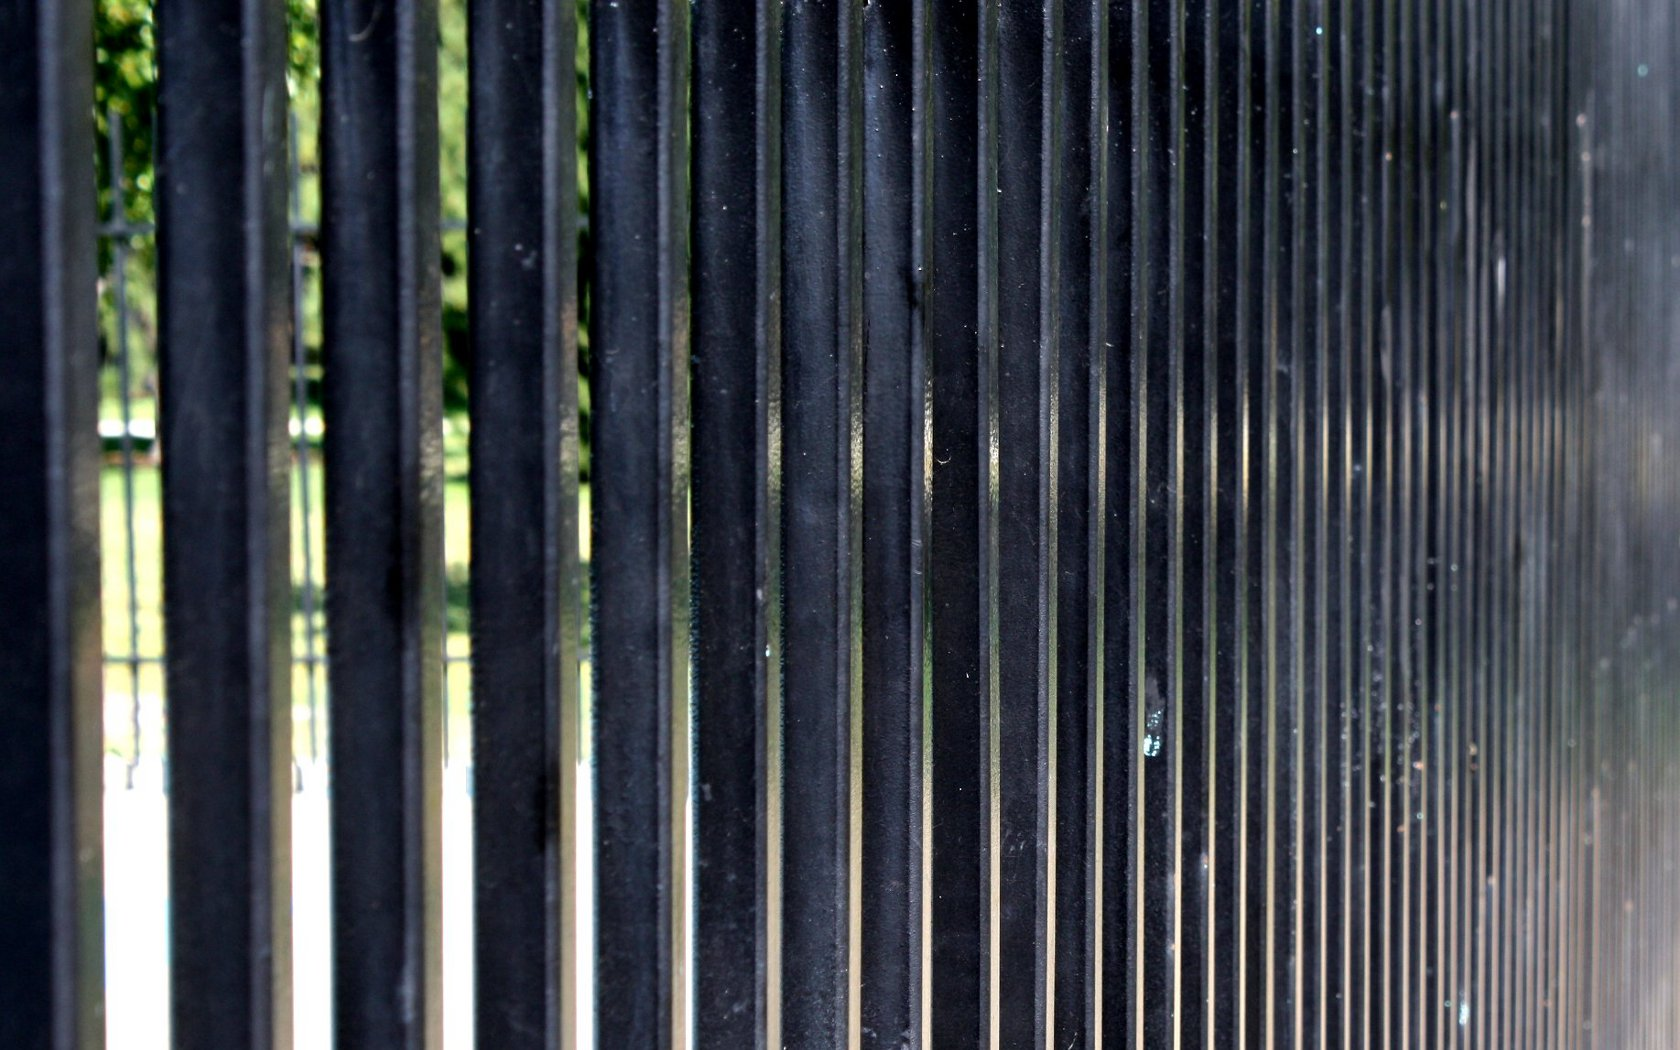 Metal Fence Background